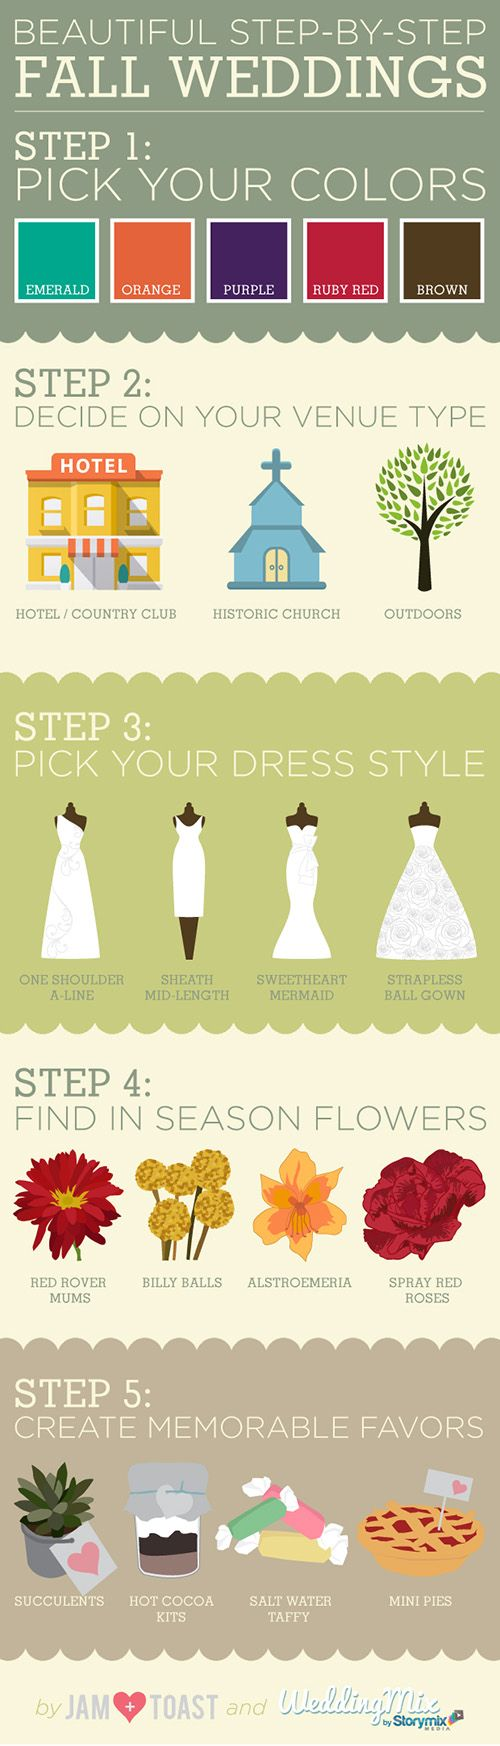 Fall wedding info graphic with four awesome suggestions for bring the comfort (and yummiest) gifts of fall into your wedding day advice from Jennifer Taylor of Taylor'd Events